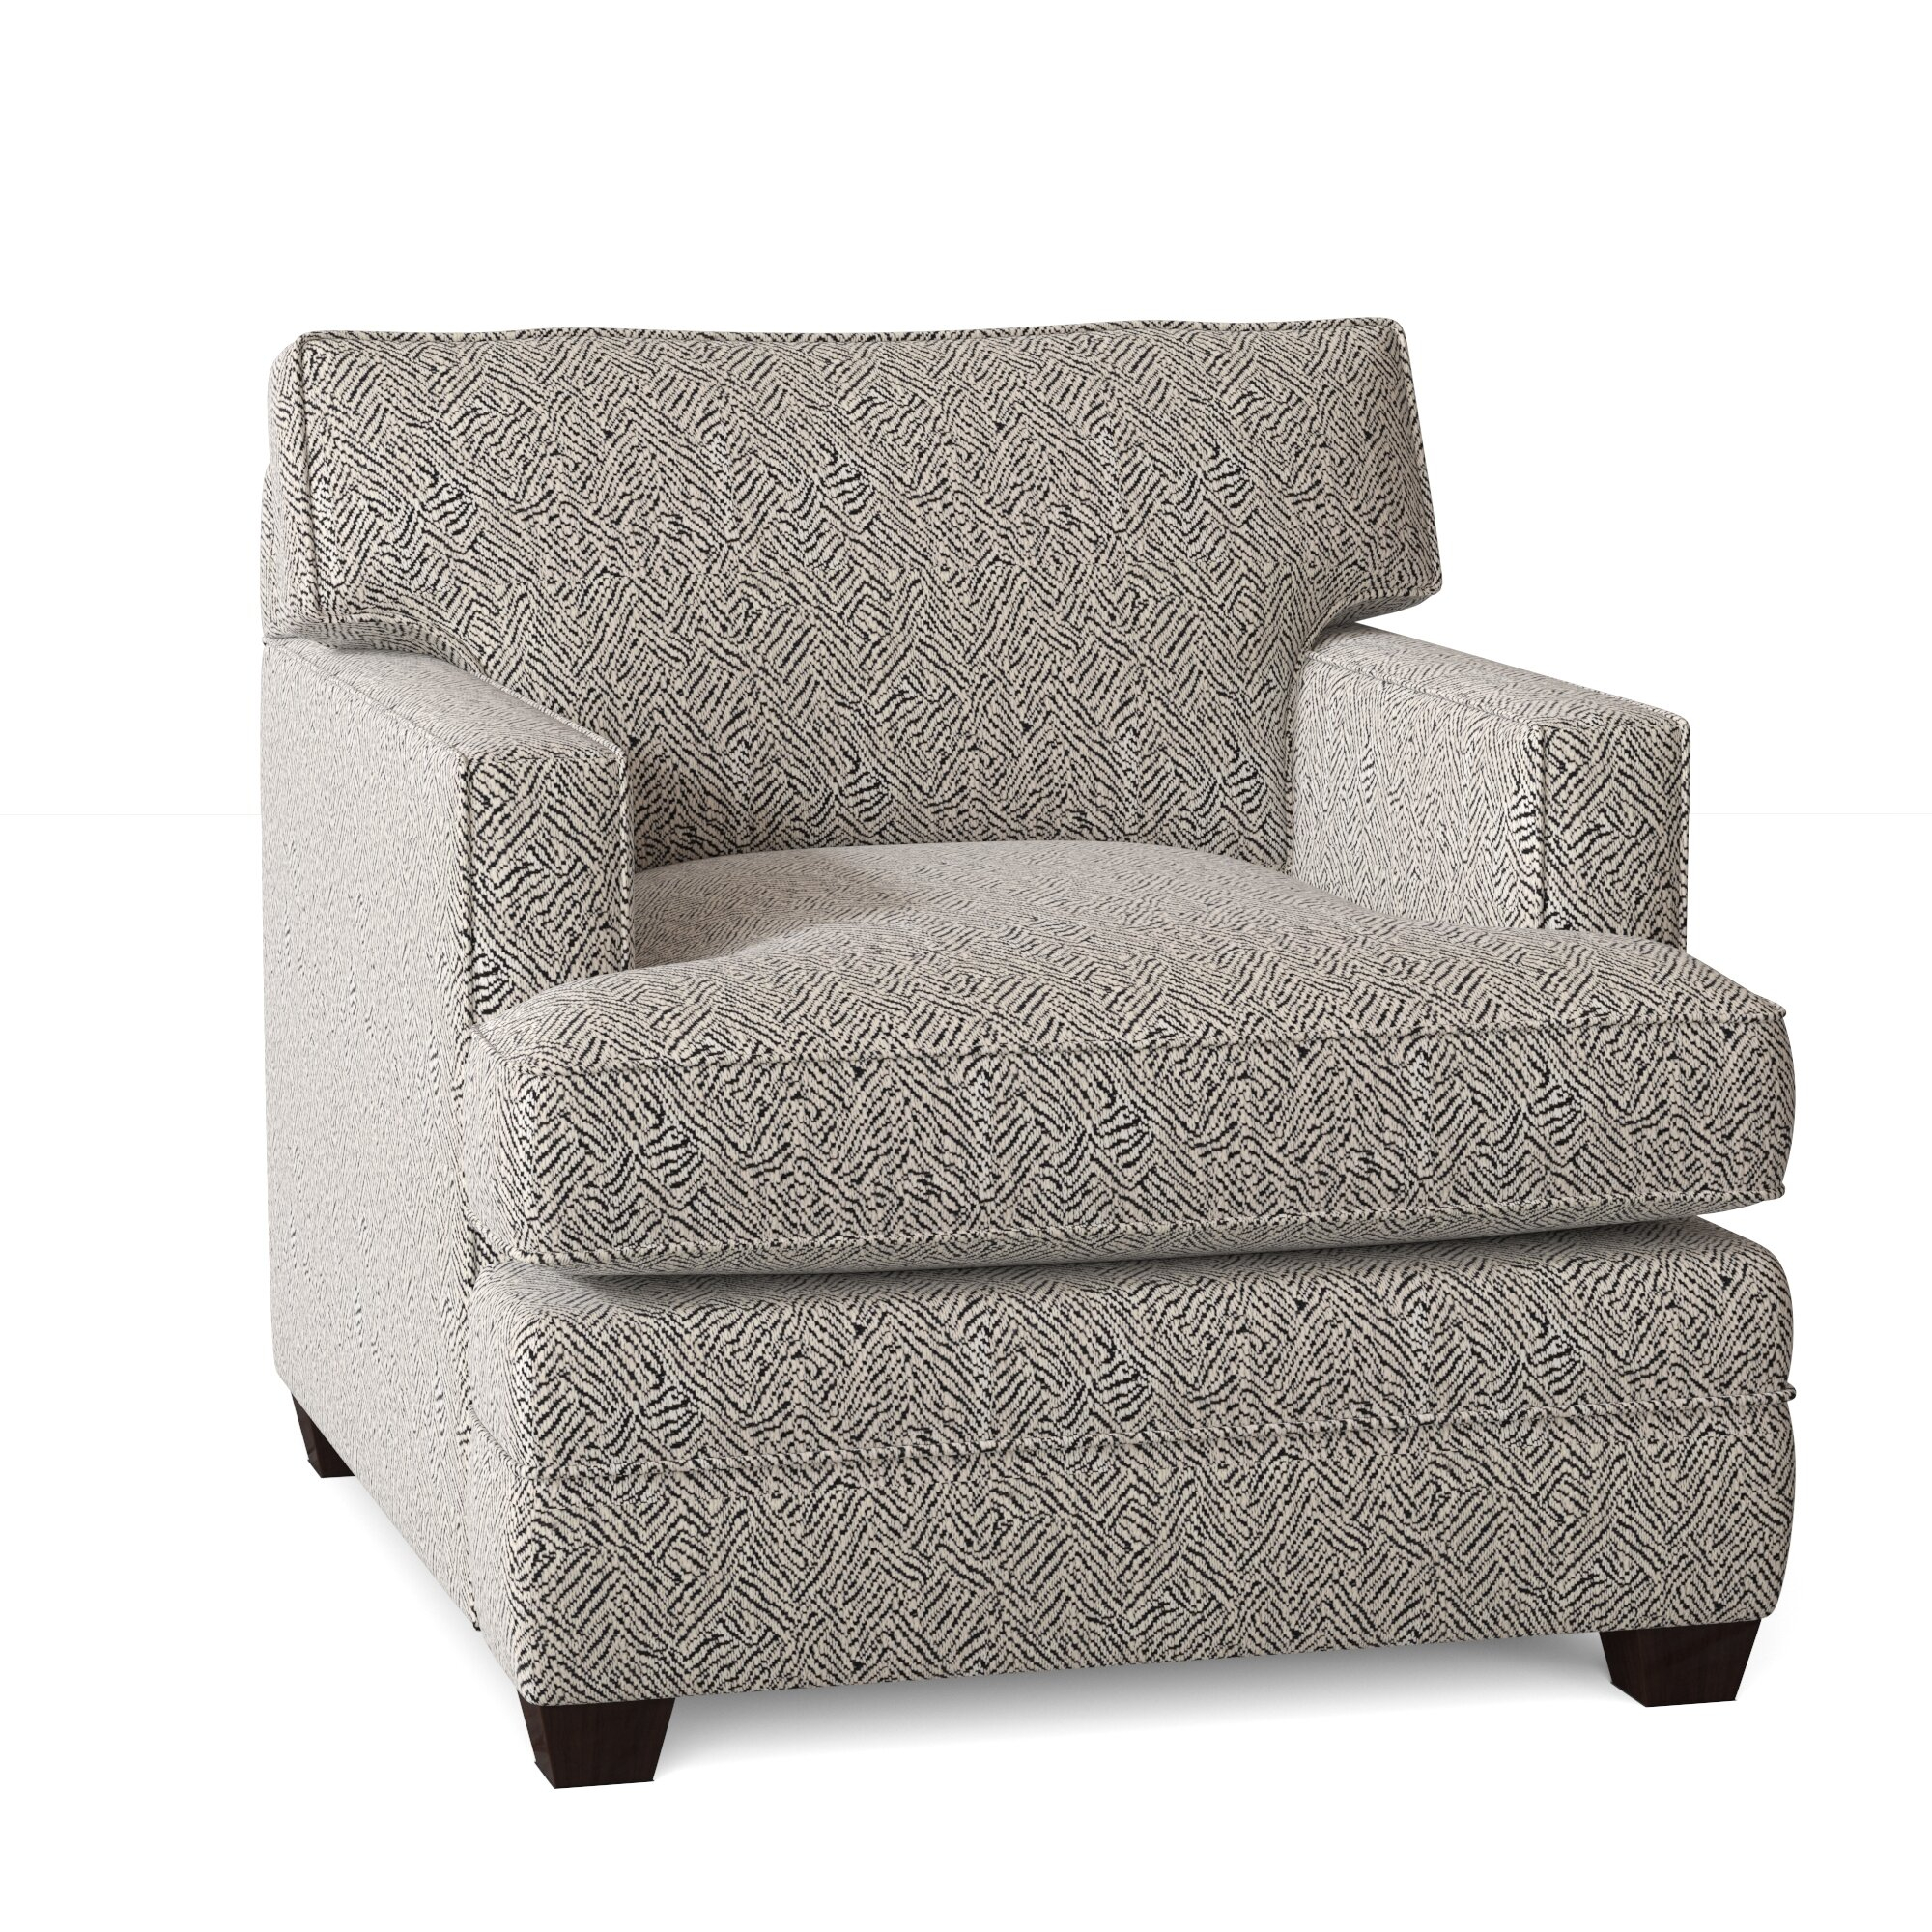 Black Silver Accent Chairs You'Ll Love In 2021 | Wayfair Within Brookhhurst Avina Armchairs (View 13 of 15)